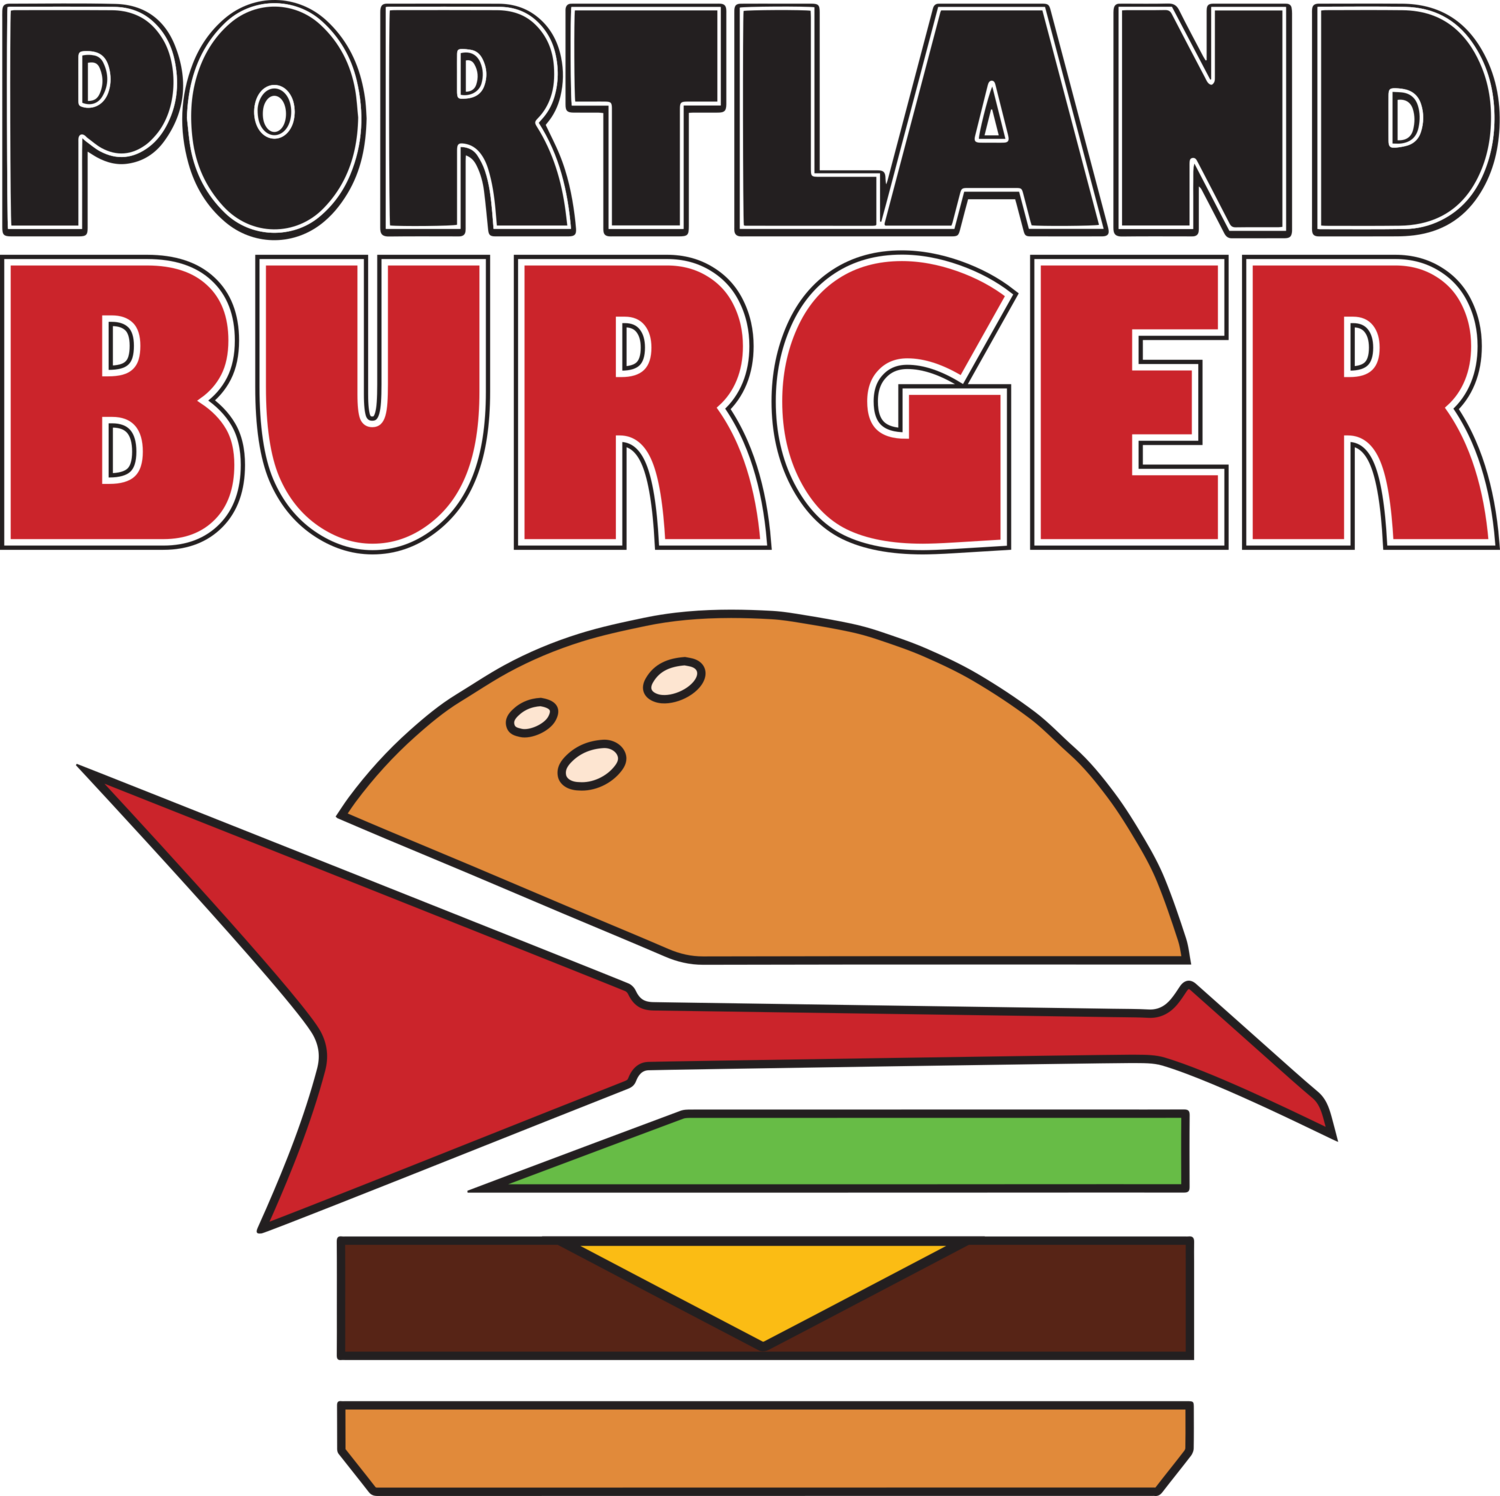 Portland's Burger spot in Portland, OR